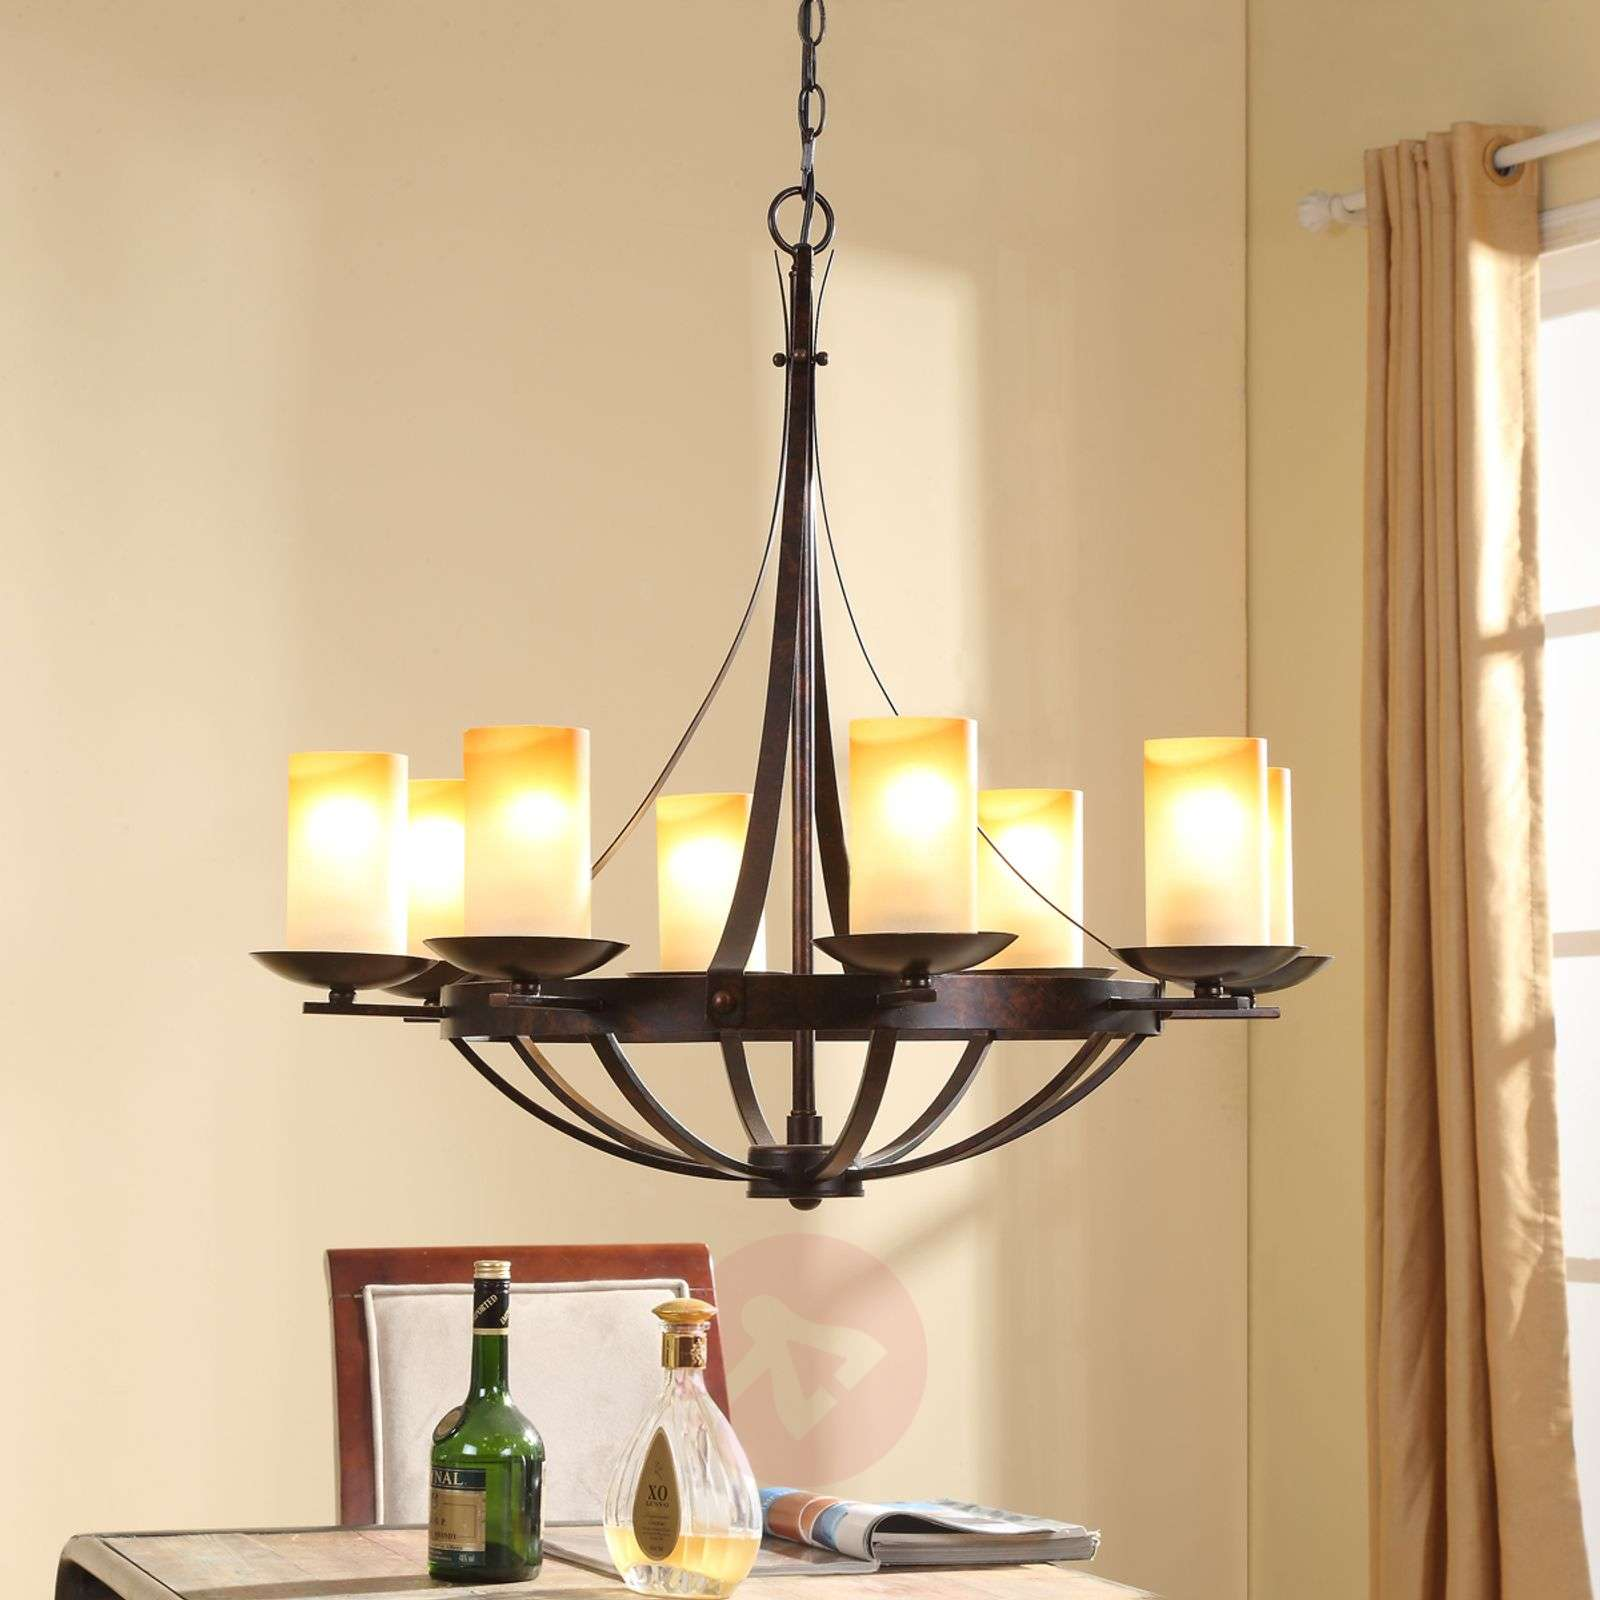 Lampadario Rustico Moderno : Acquista luke lampadario rustico color ruggine lampade.it